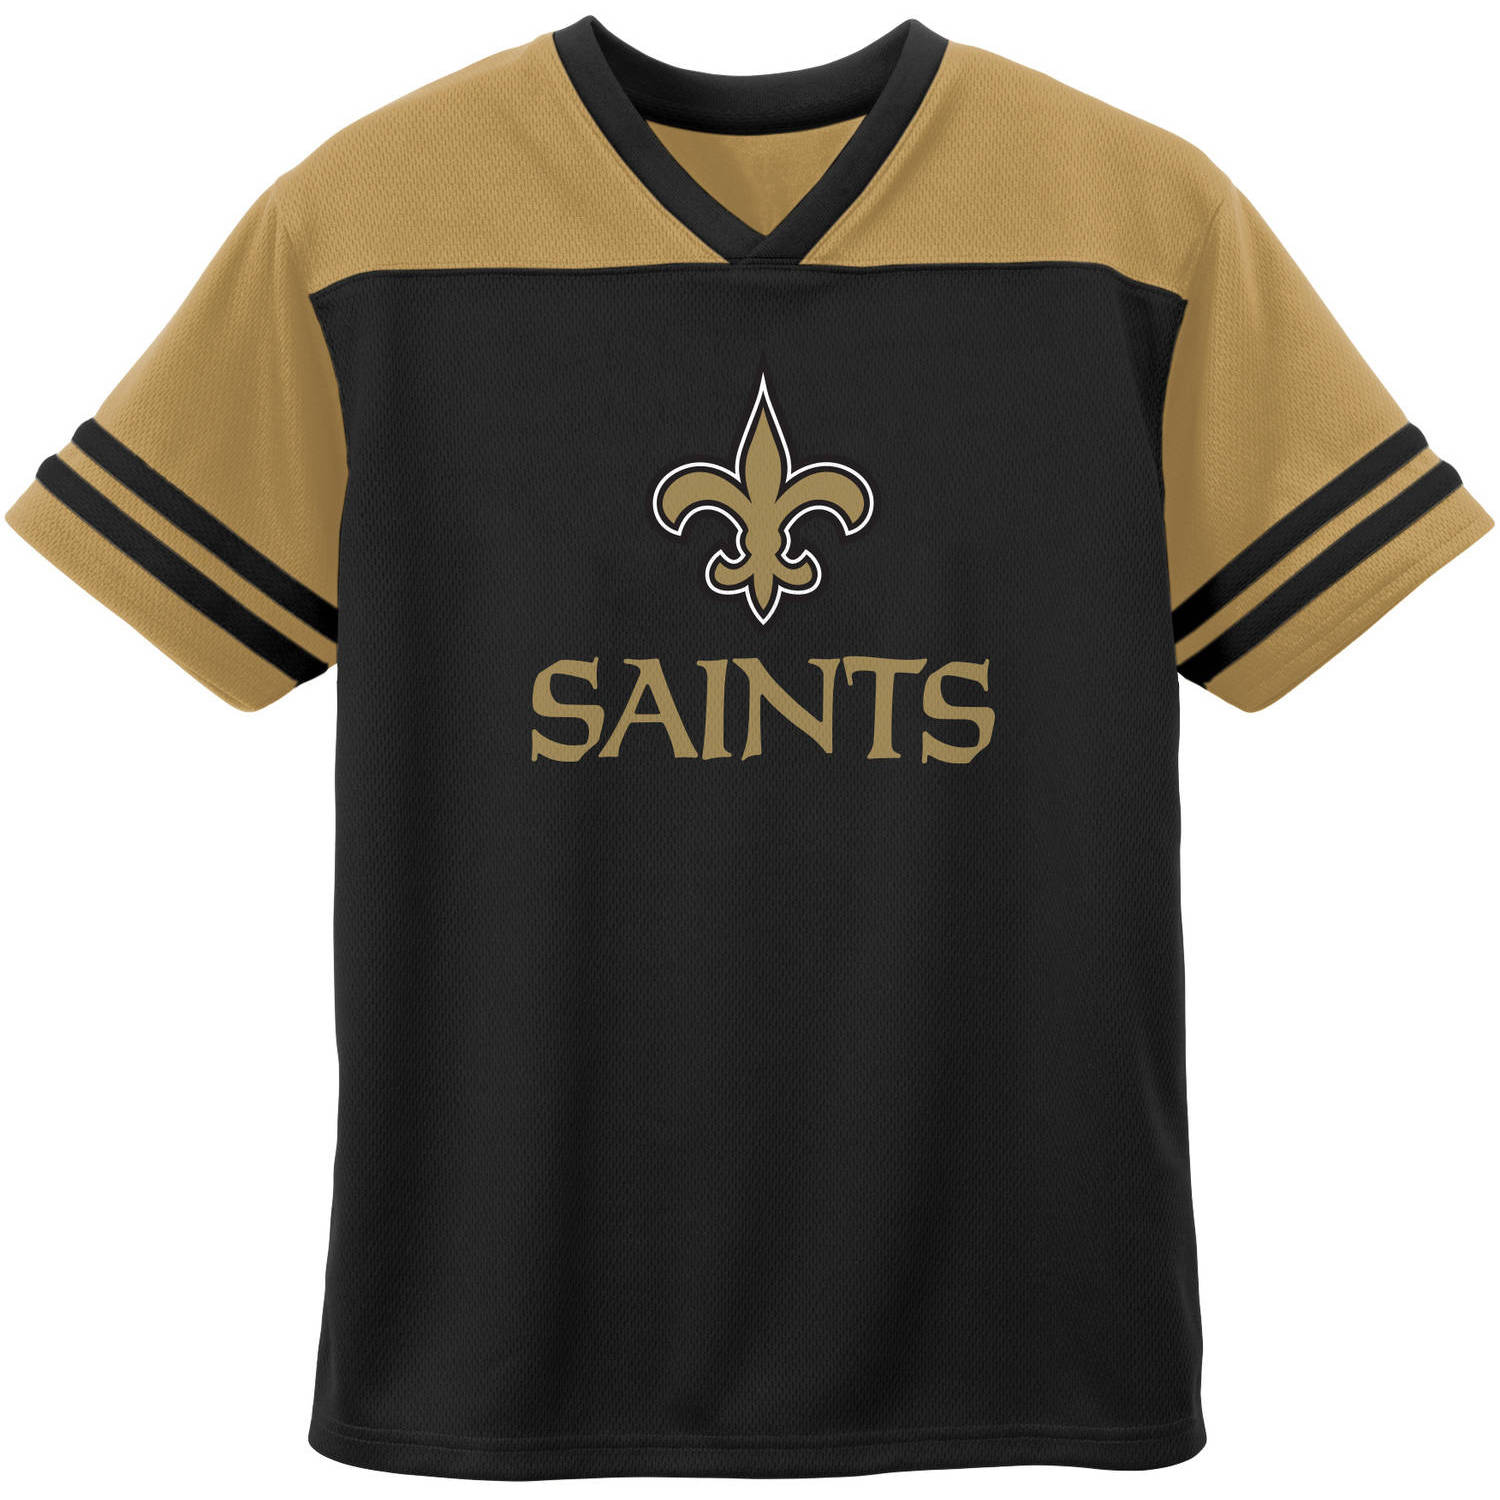 NFL New Orleans Saints Youth Short Sleeve Graphic Tee